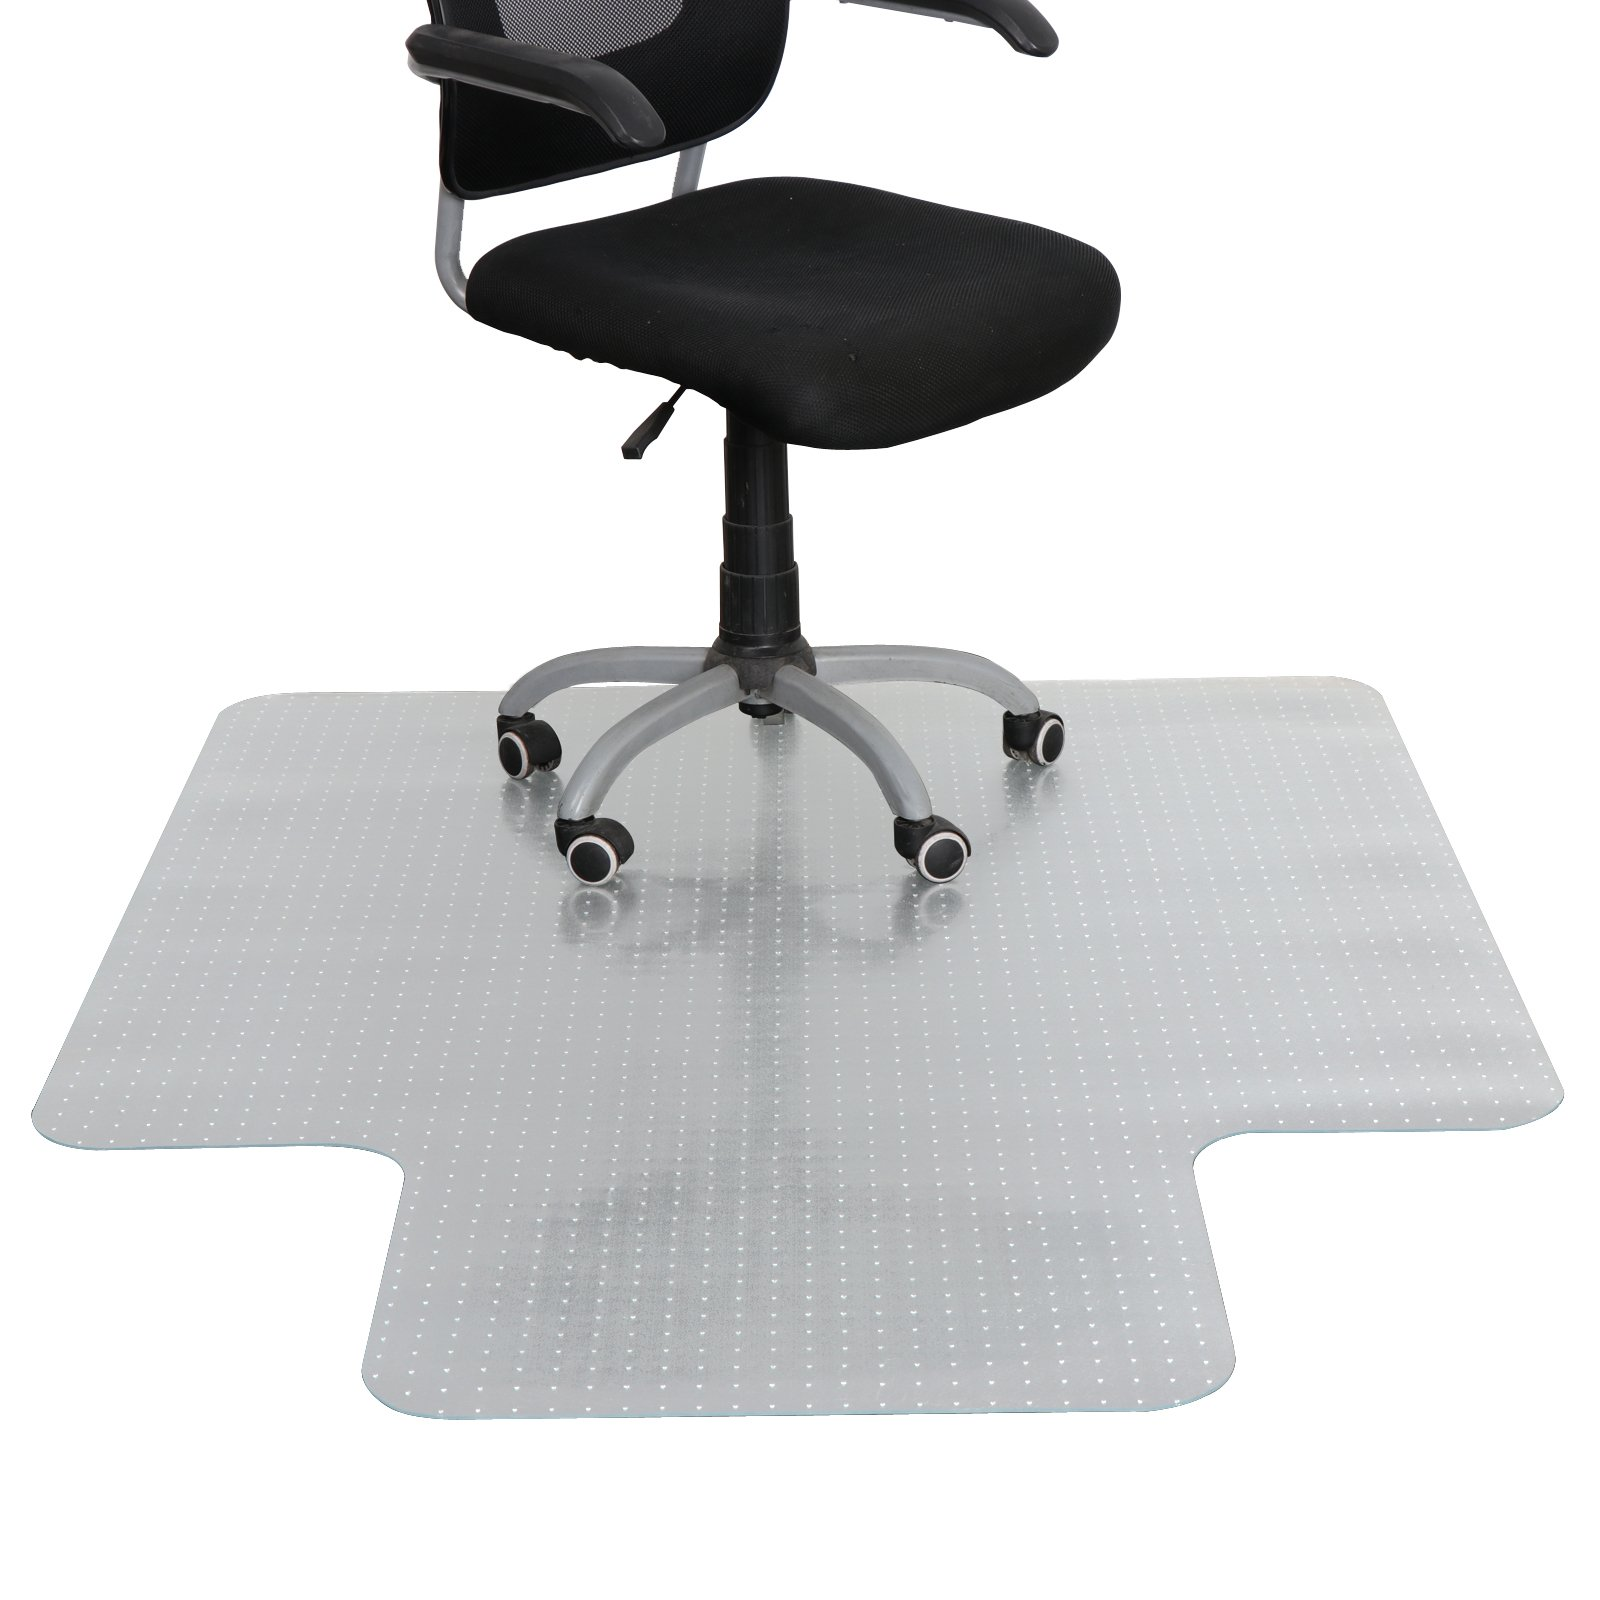 HomGarden 48'' X 60'' 1/8'' with Lip Carpet Chair Mat Transparent for Low and Medium Pile Carpets Desk Chair Mat, Home Office Floor Protector